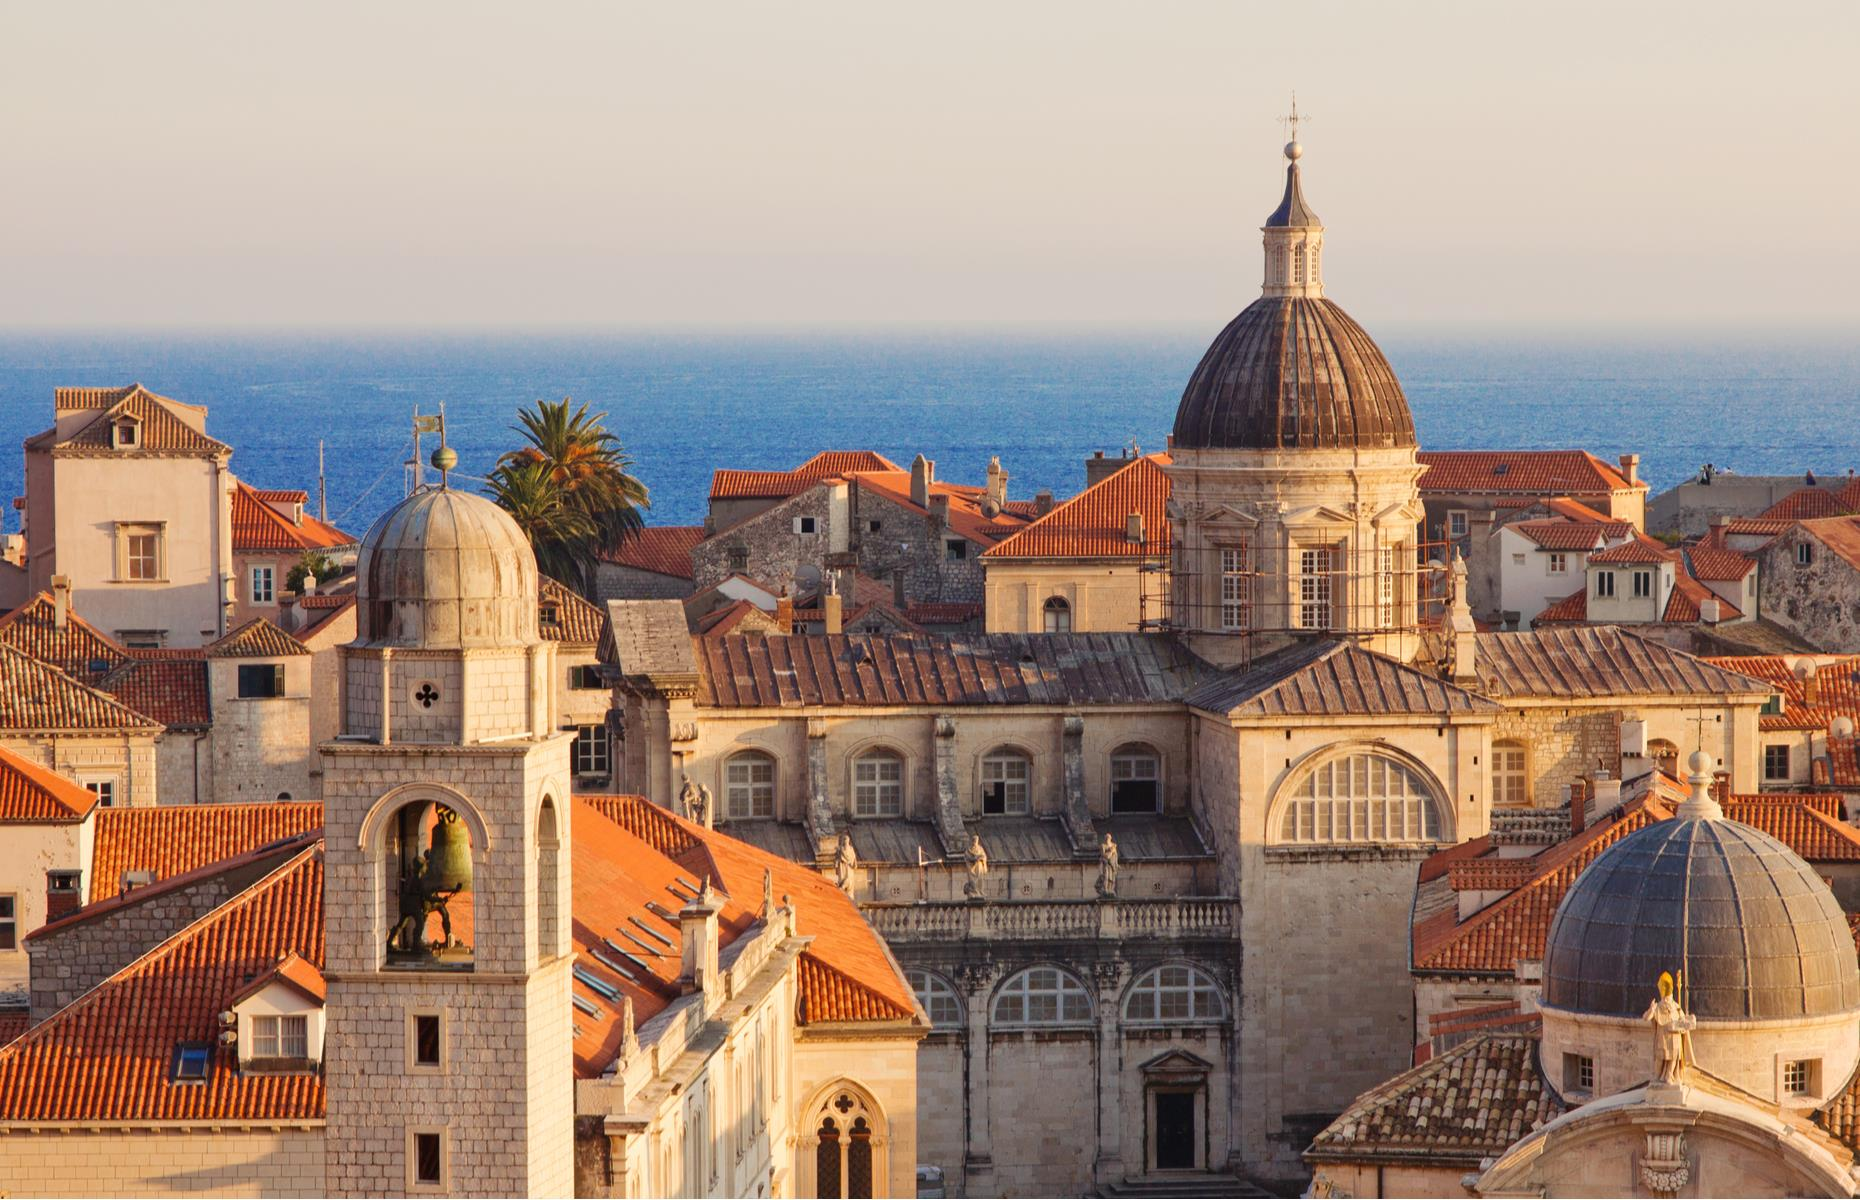 Slide 20 of 30: From its apricot and honey-hued rooftops to its wide, marble roads, Dubrovnik's 13th-century Old Town is almost too pretty to be true. It's encased by thick stone walls that give clear views in every direction. If that wasn't enough, it looms over the Adriatic Sea, with views of the sapphire water dotted with verdant islands.